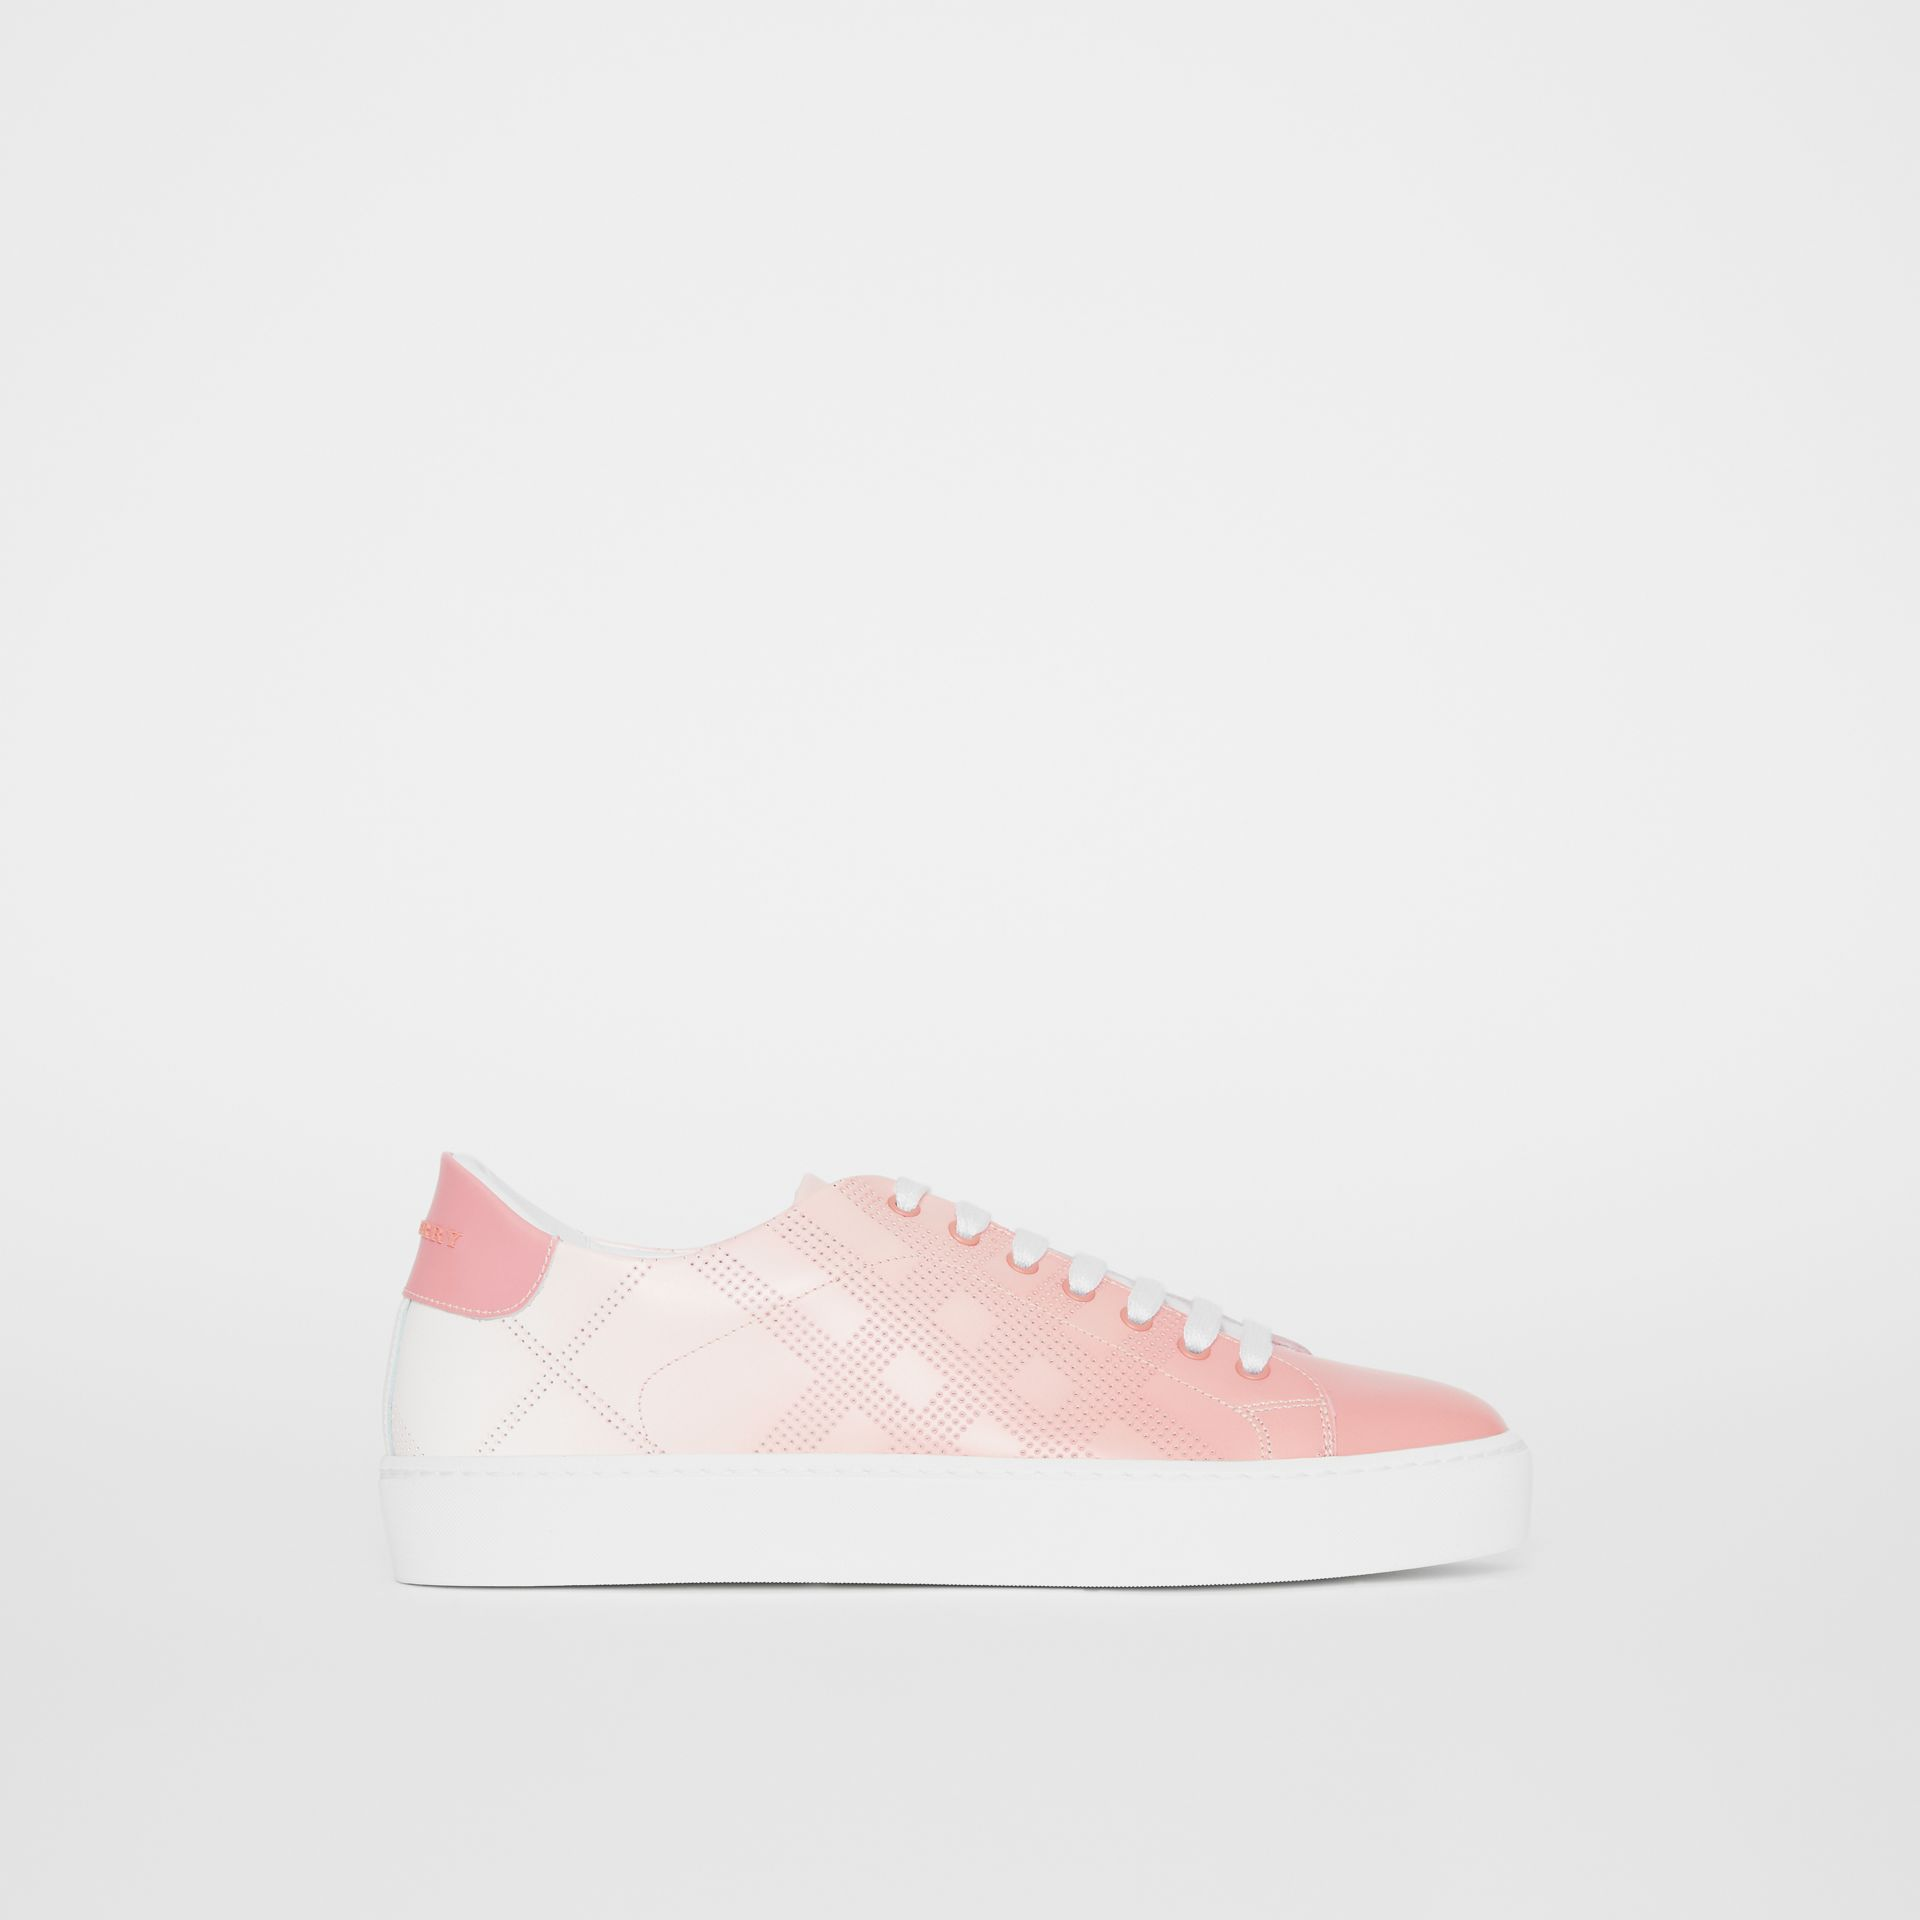 Perforated Check Dégradé Leather Sneakers in Sugar Pink - Women | Burberry - gallery image 5